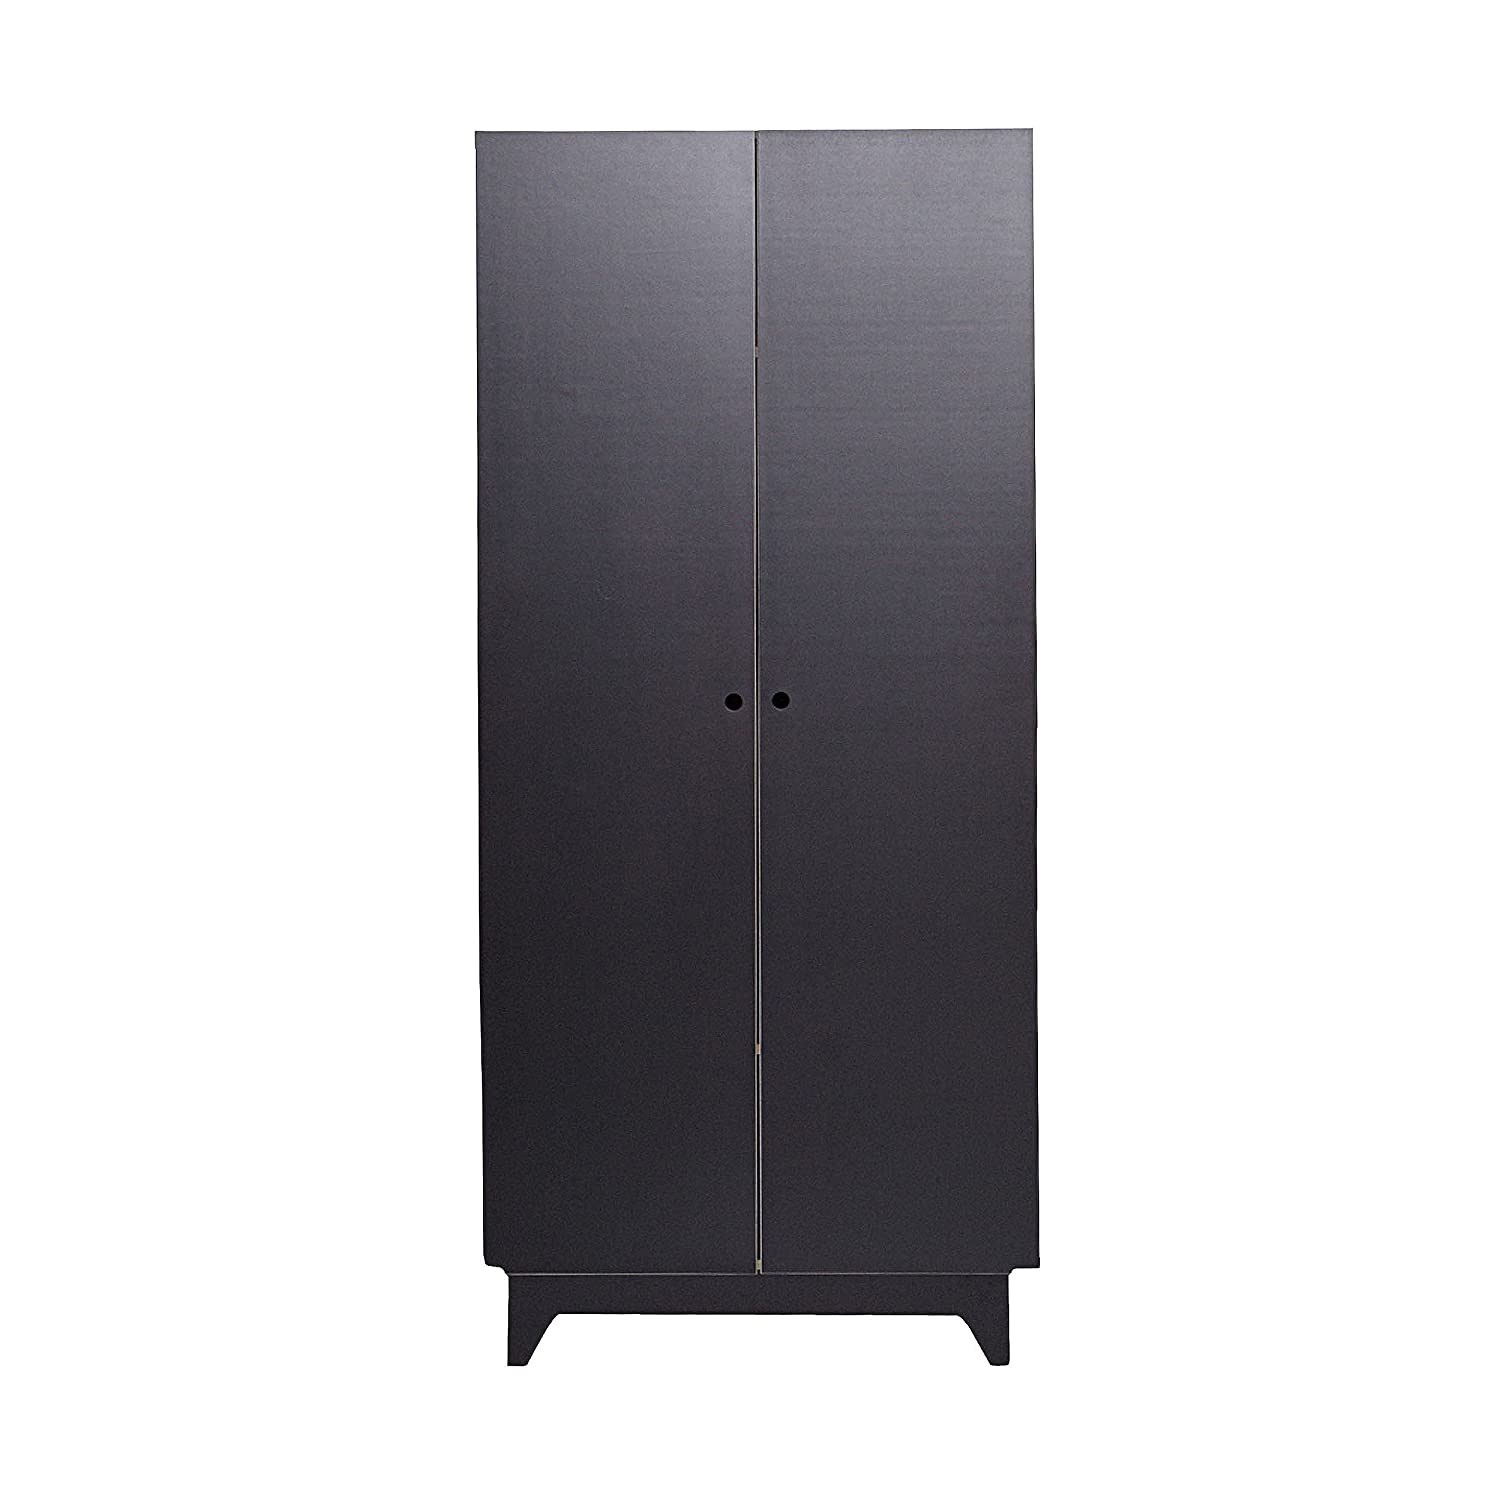 hapsal schrank mit basis b dunkelbraun g nstig. Black Bedroom Furniture Sets. Home Design Ideas